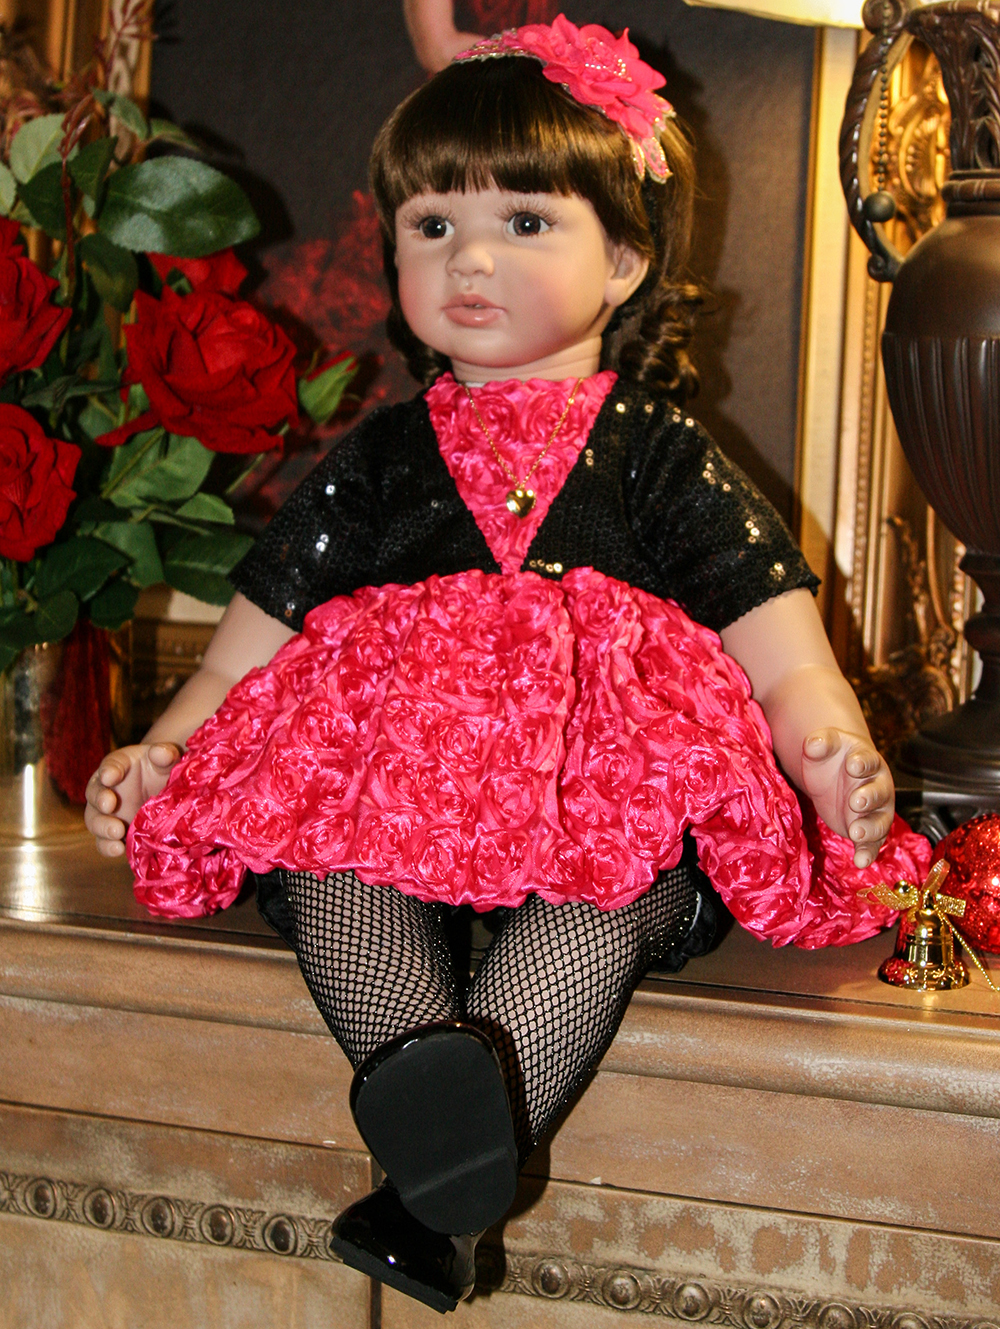 Pursue 24/60 cm Handmade Real Silicone Reborn Toddler Princess Girl Baby Alive Dolls Toys for Girls Birthday Christmas Gifts pursue 24 60 cm new pink dress real life baby dolls reborn silicone toddler princess girl dolls toys for children girl birthday